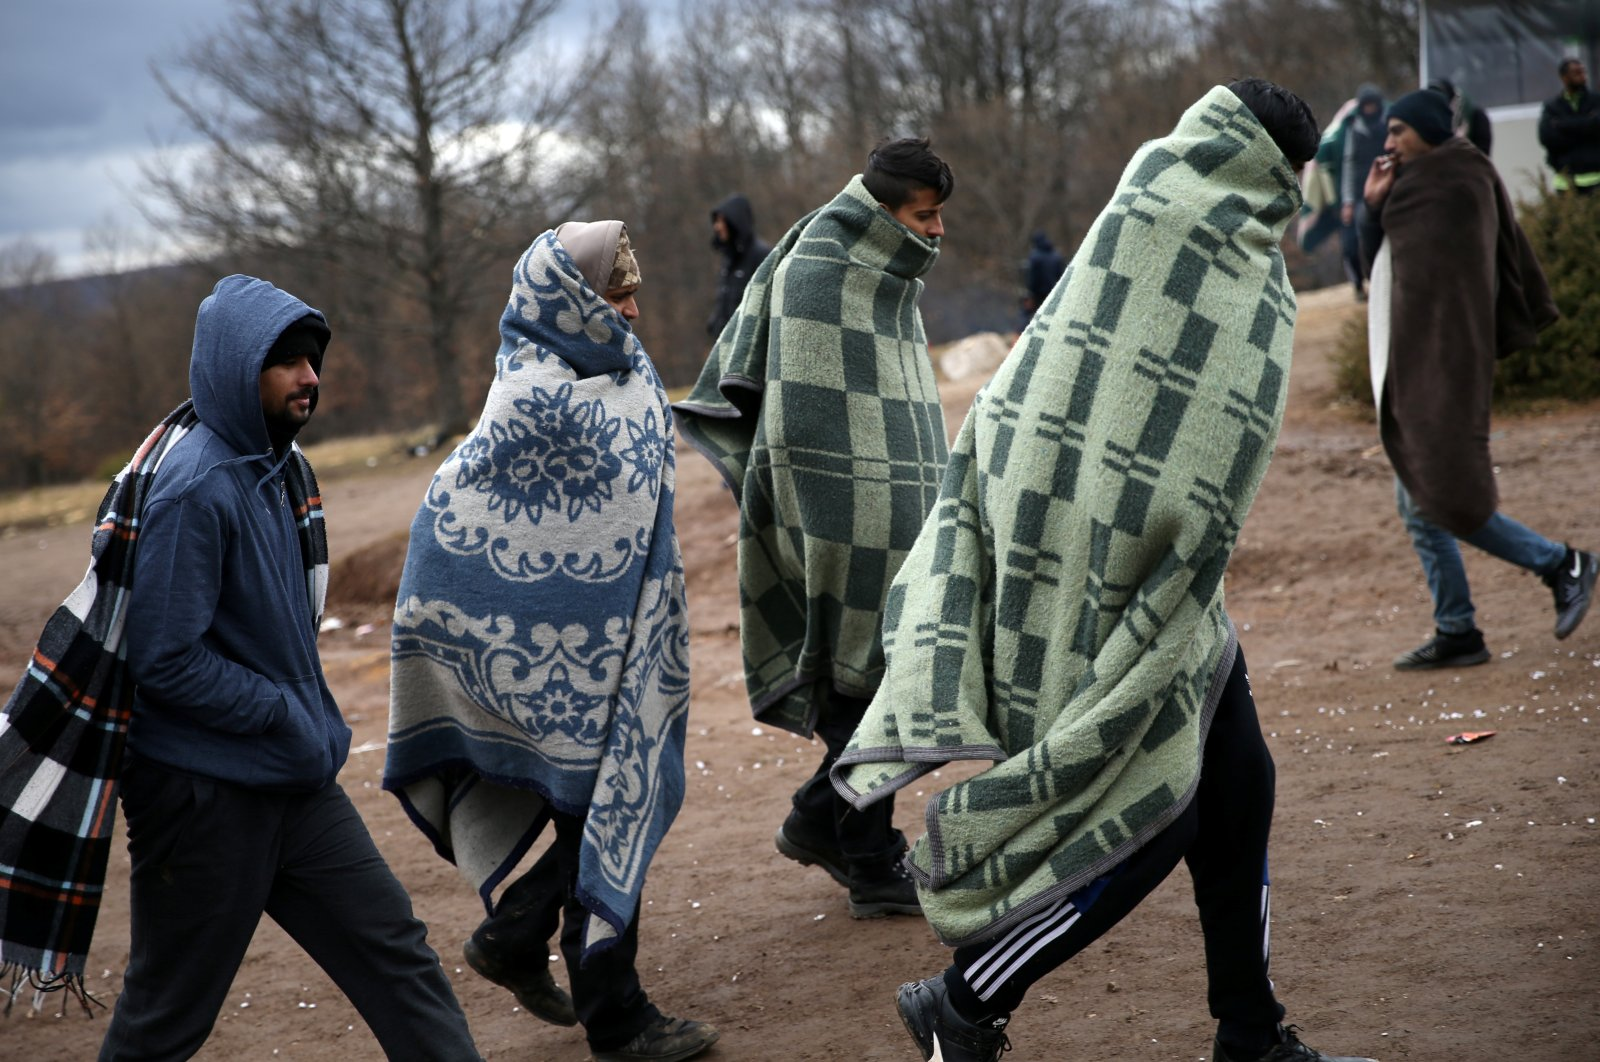 Migrants leave the Lipa center following a fire in Bihac, Bosnia-Herzegovina, Dec. 24, 2020. (Reuters Photo)